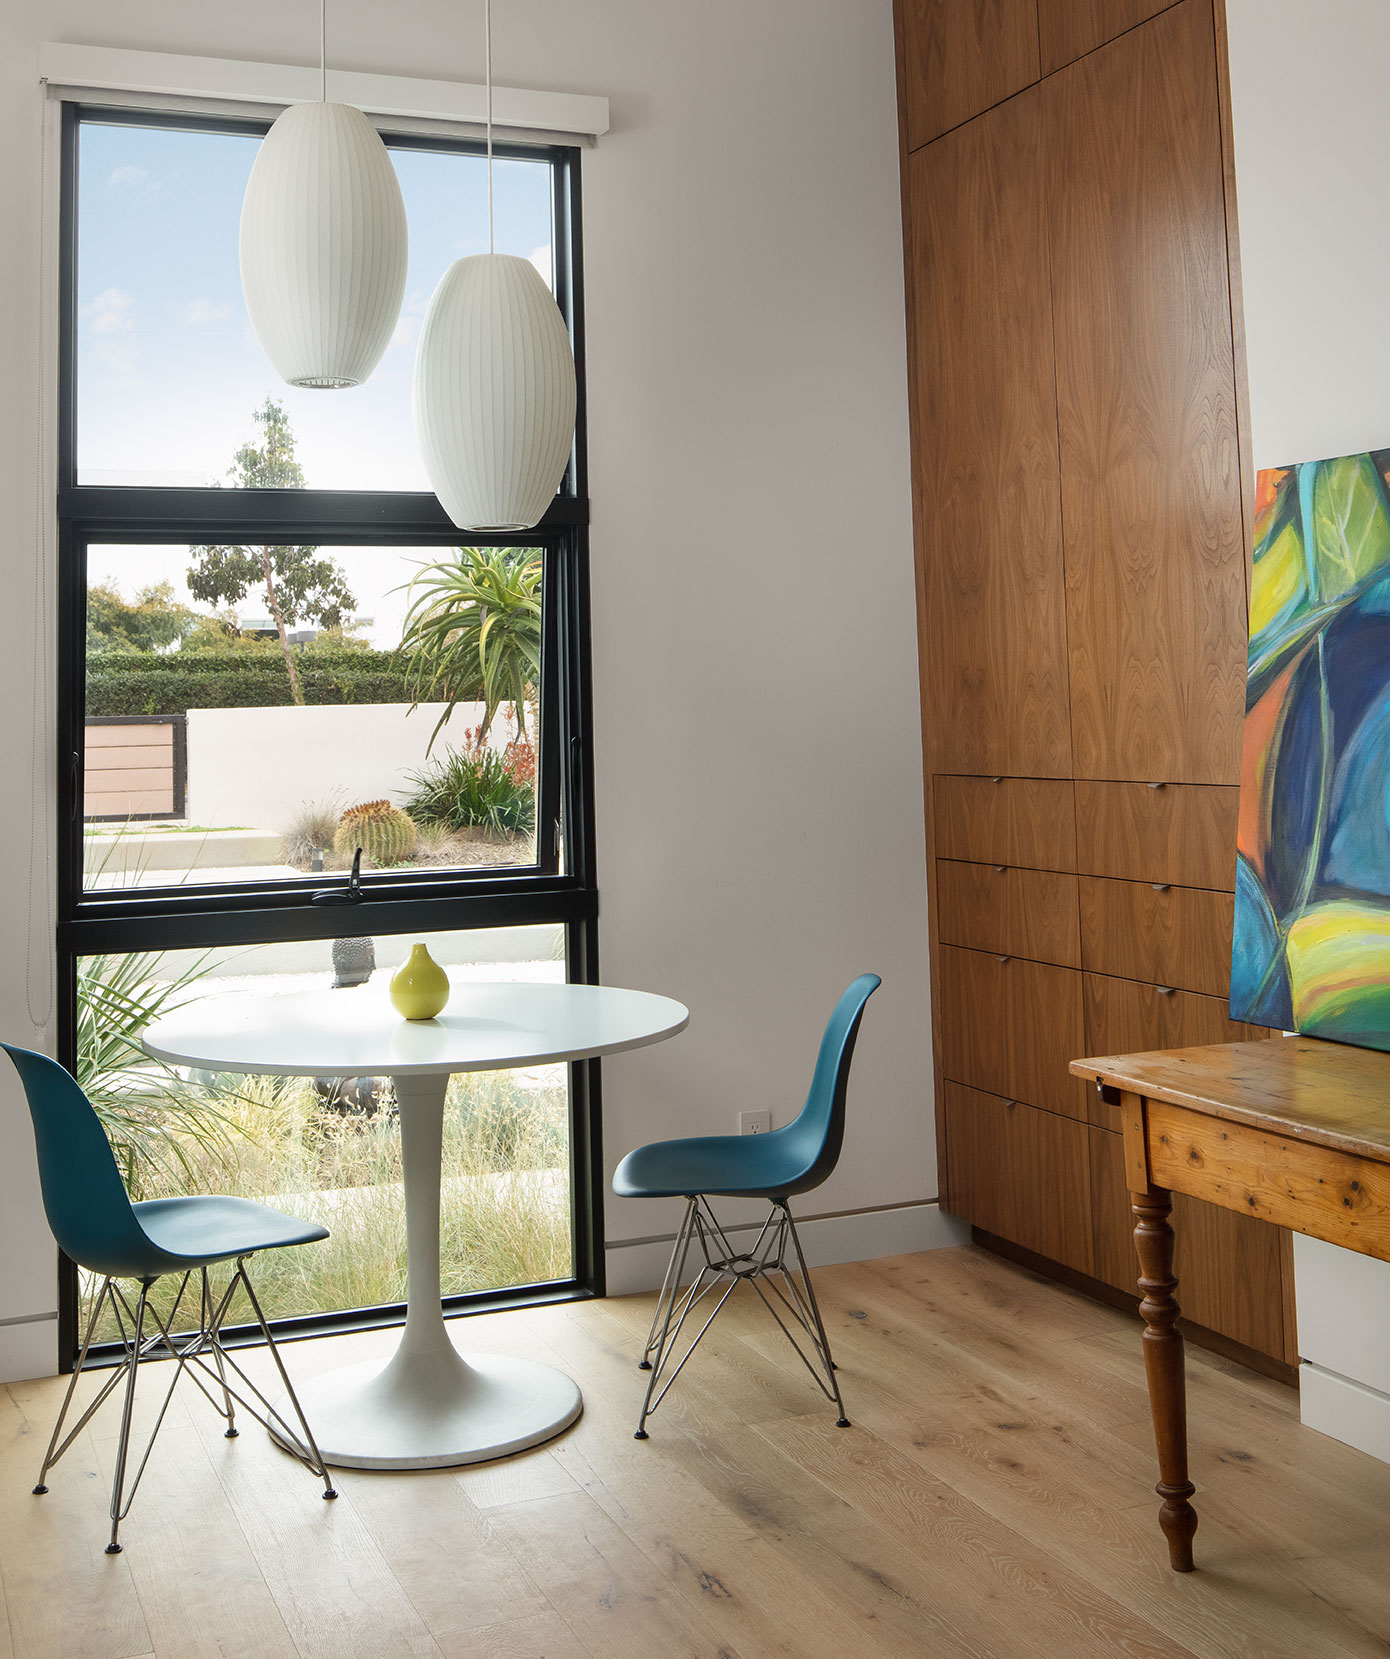 green home design office tutoring space sustainable architecture LEED